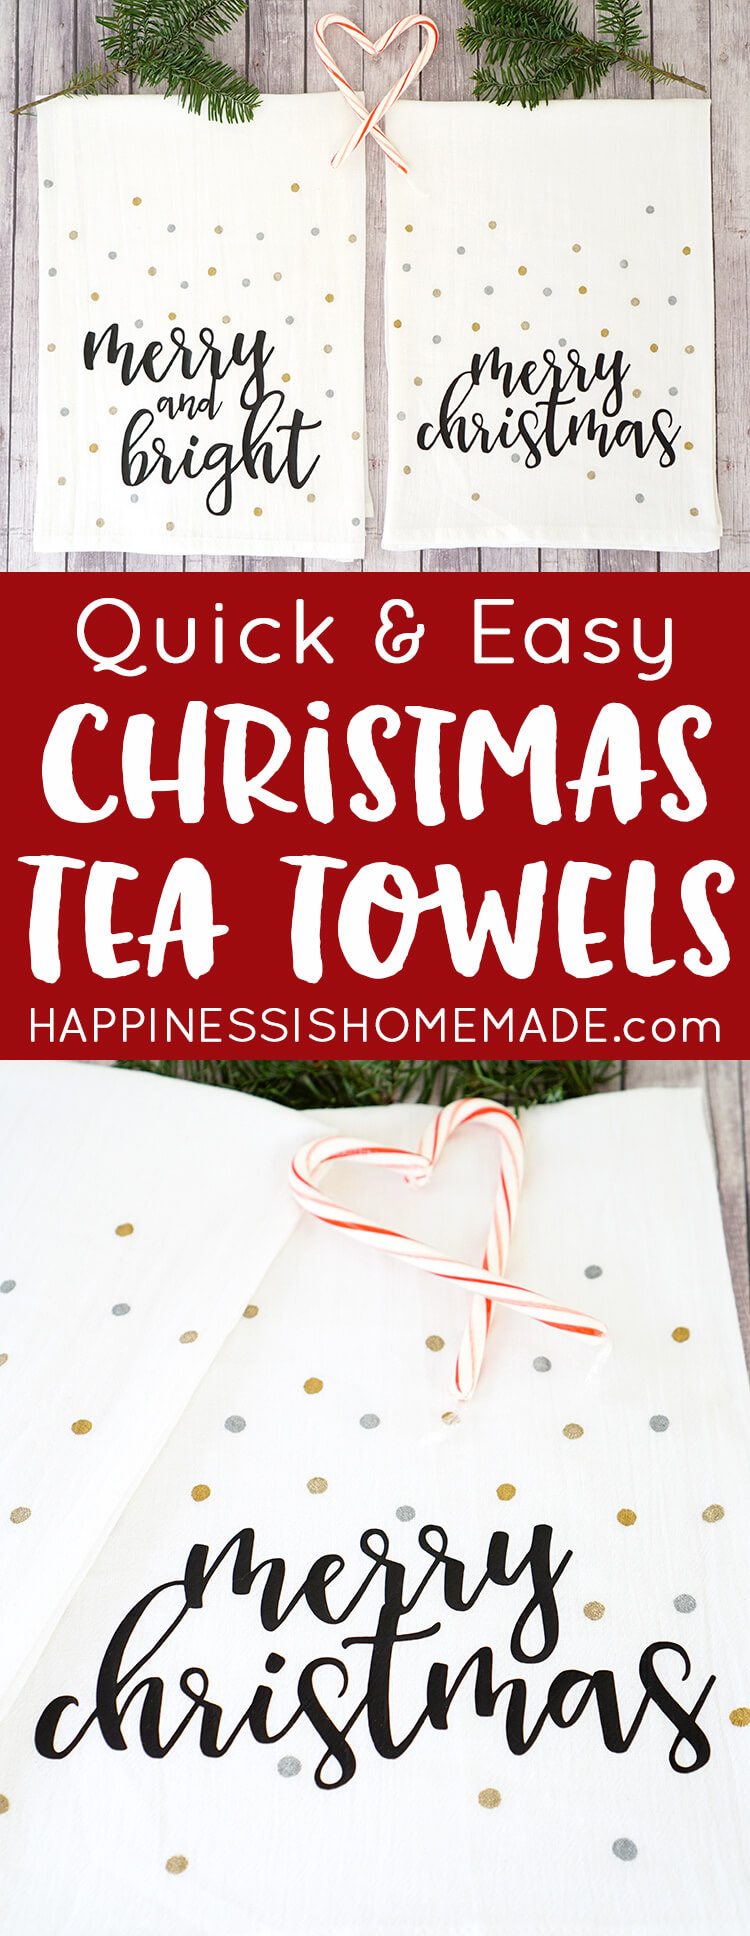 quick-and-easy-christmas-tea-towels-holiday-gift-idea